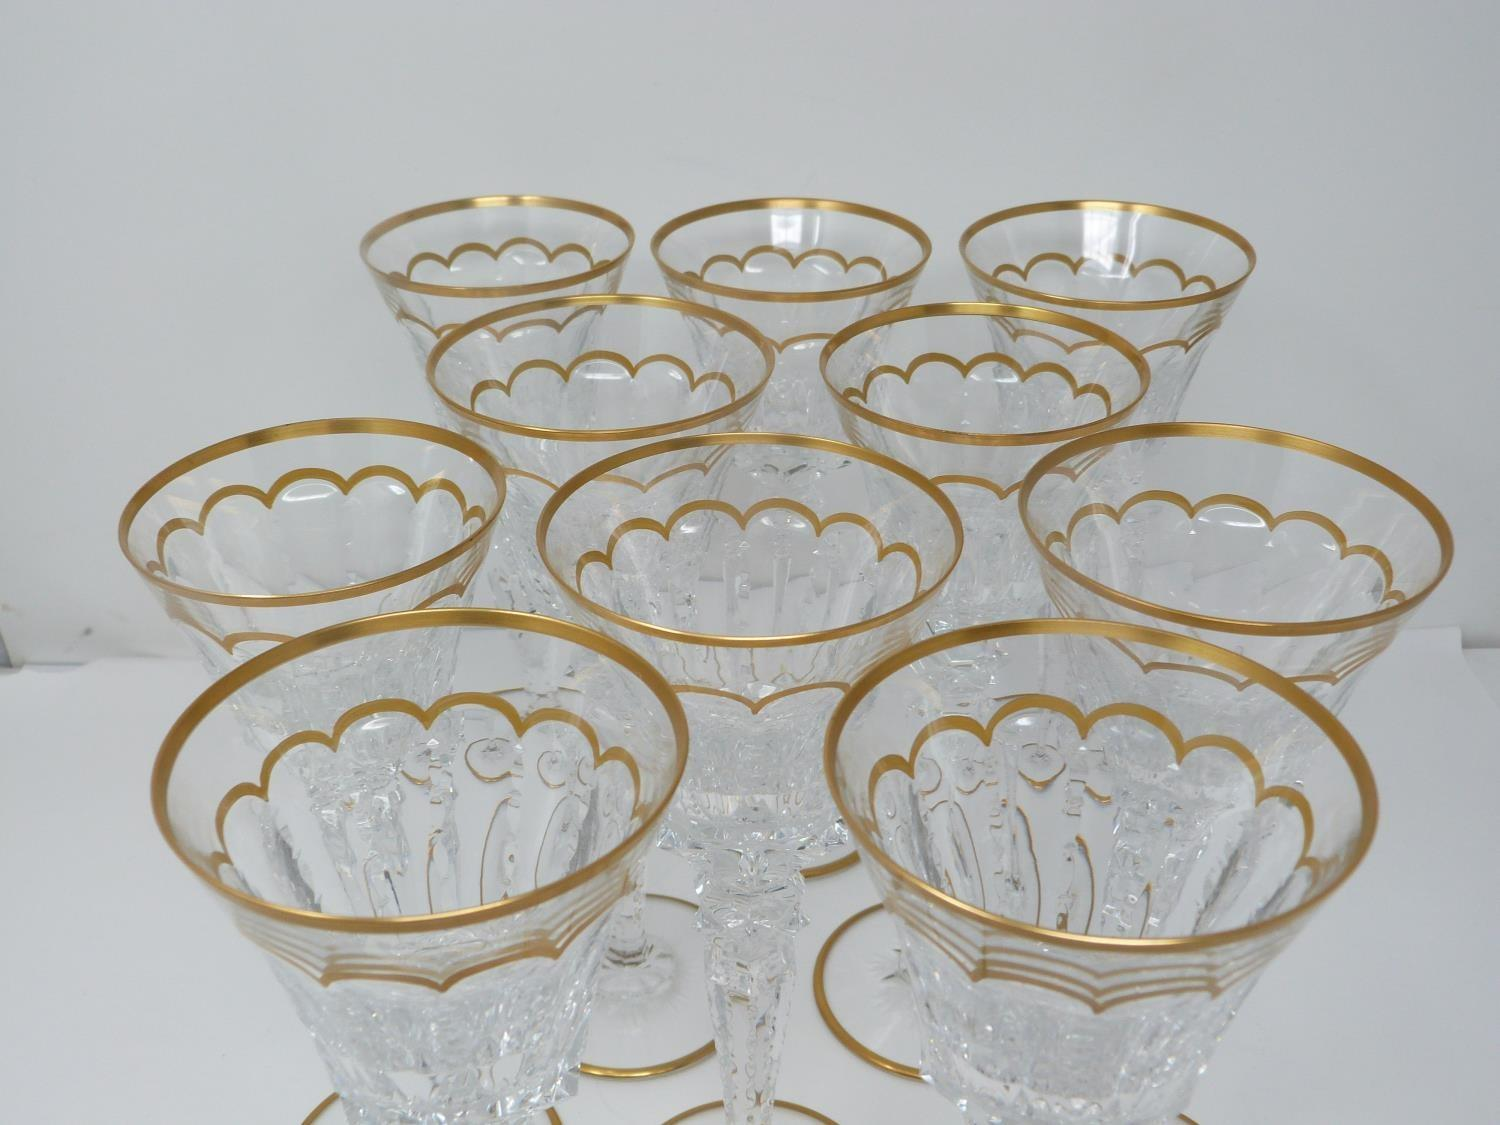 A set of ten St Louis Excellence crystal wine glasses, with gilded scalloped detailing and gilded - Image 2 of 5